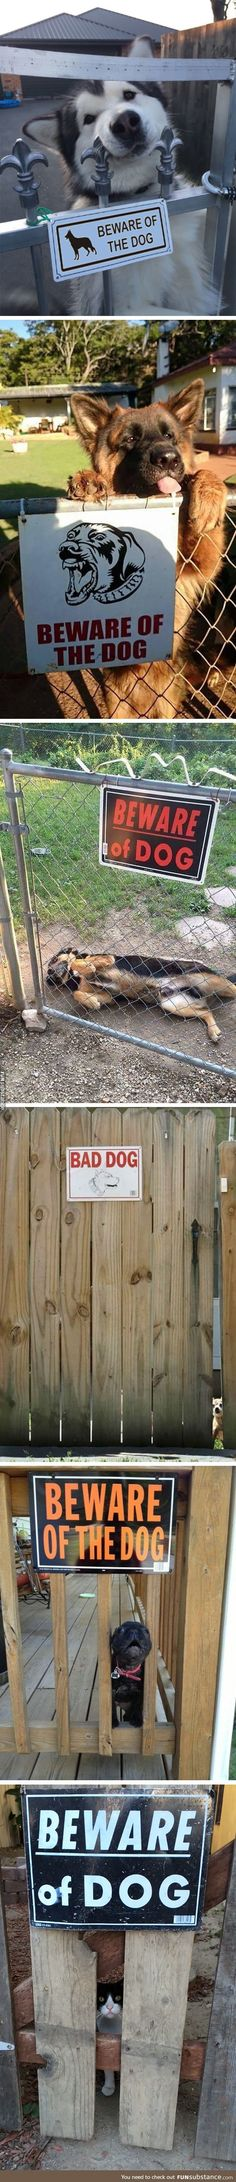 Beware of the dog,jajaja too cute to be true